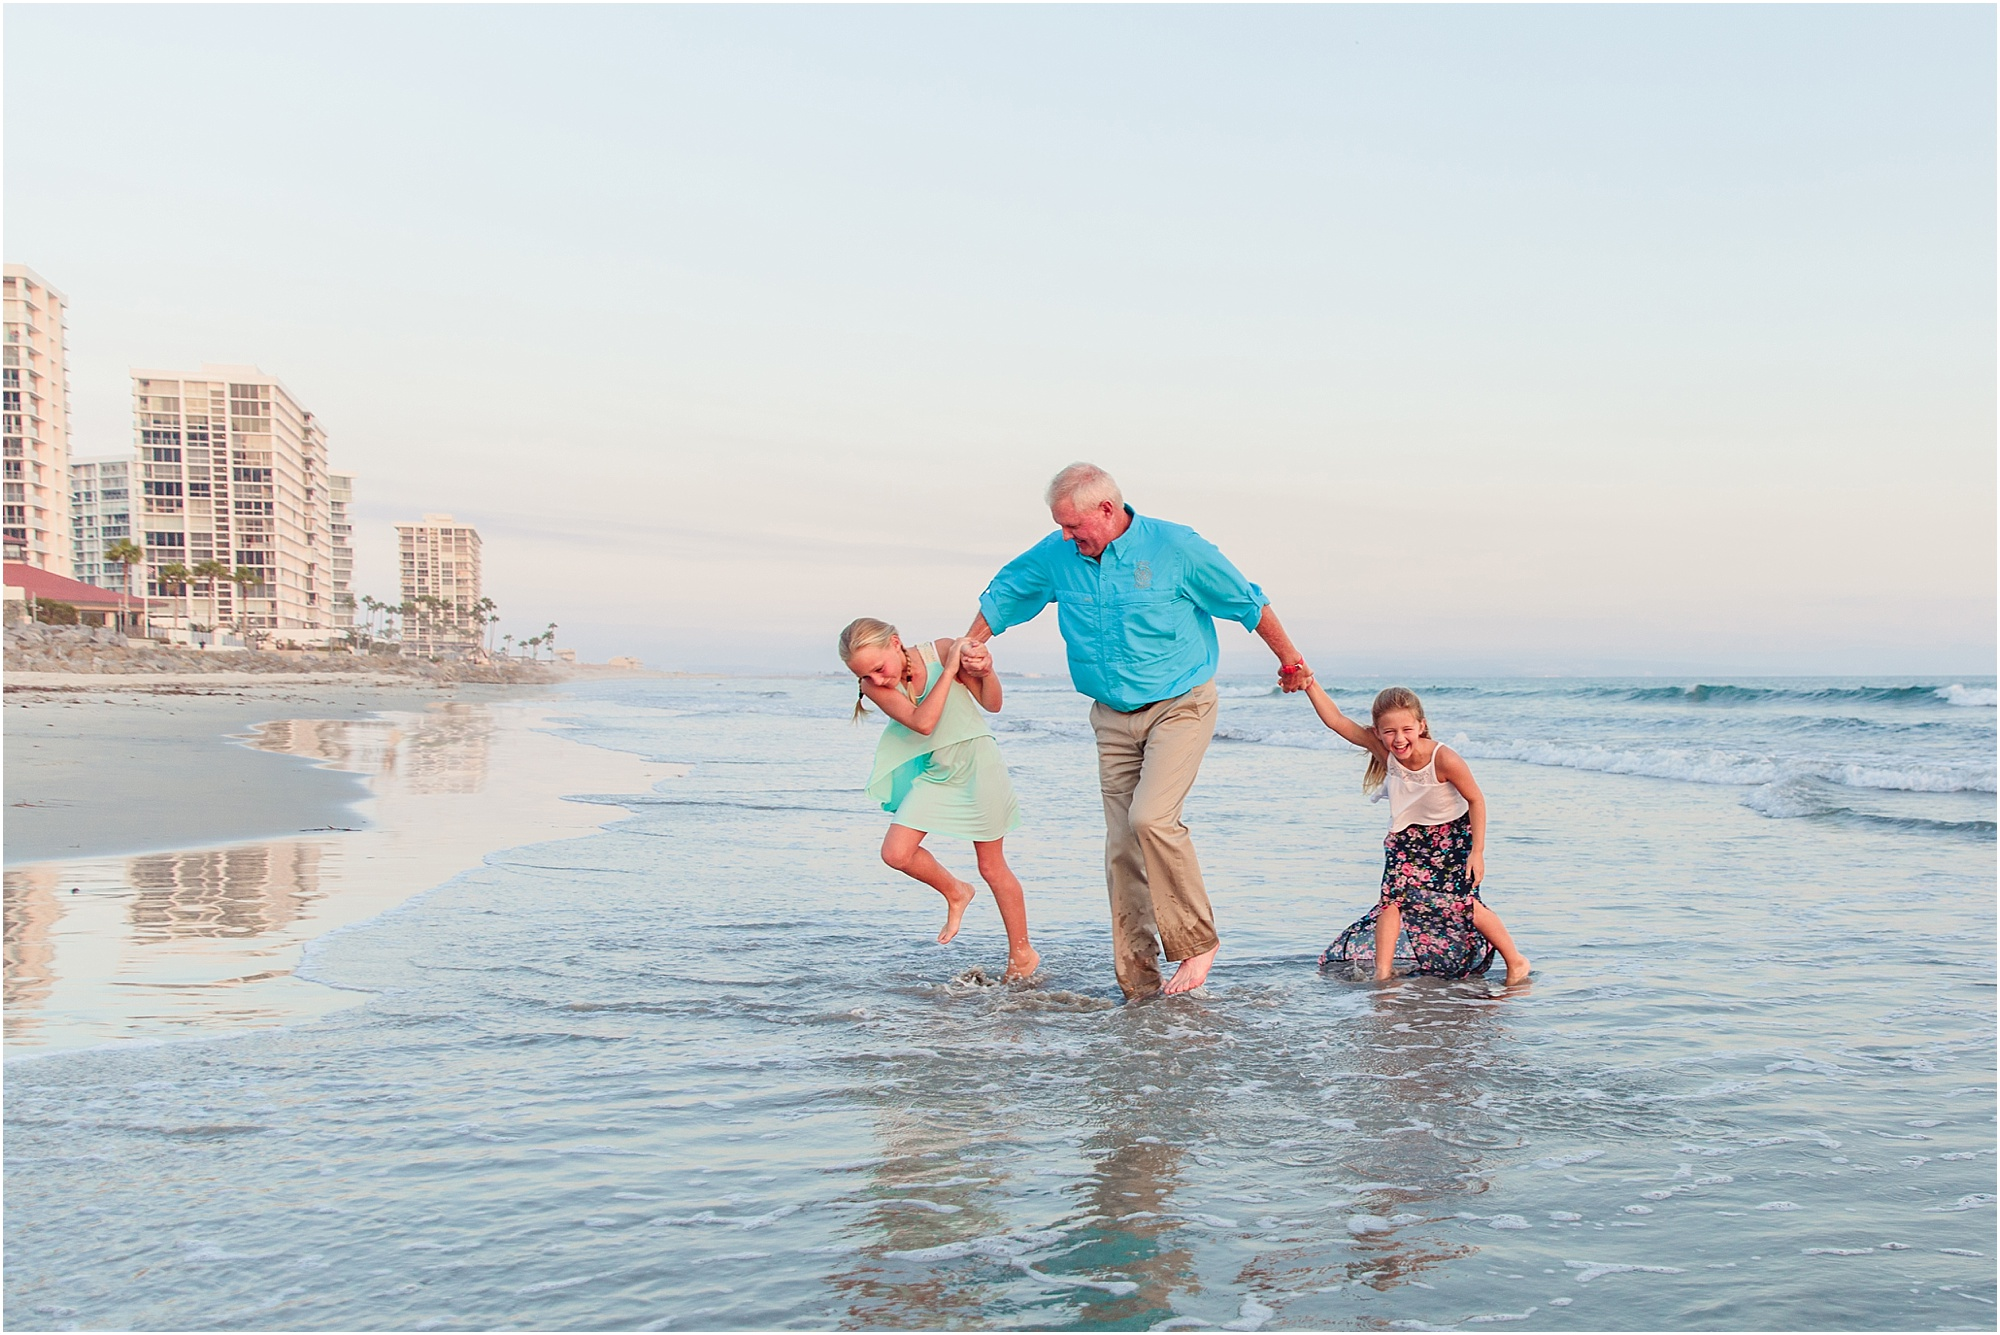 Grandchildren | Granddaughters on the Beach